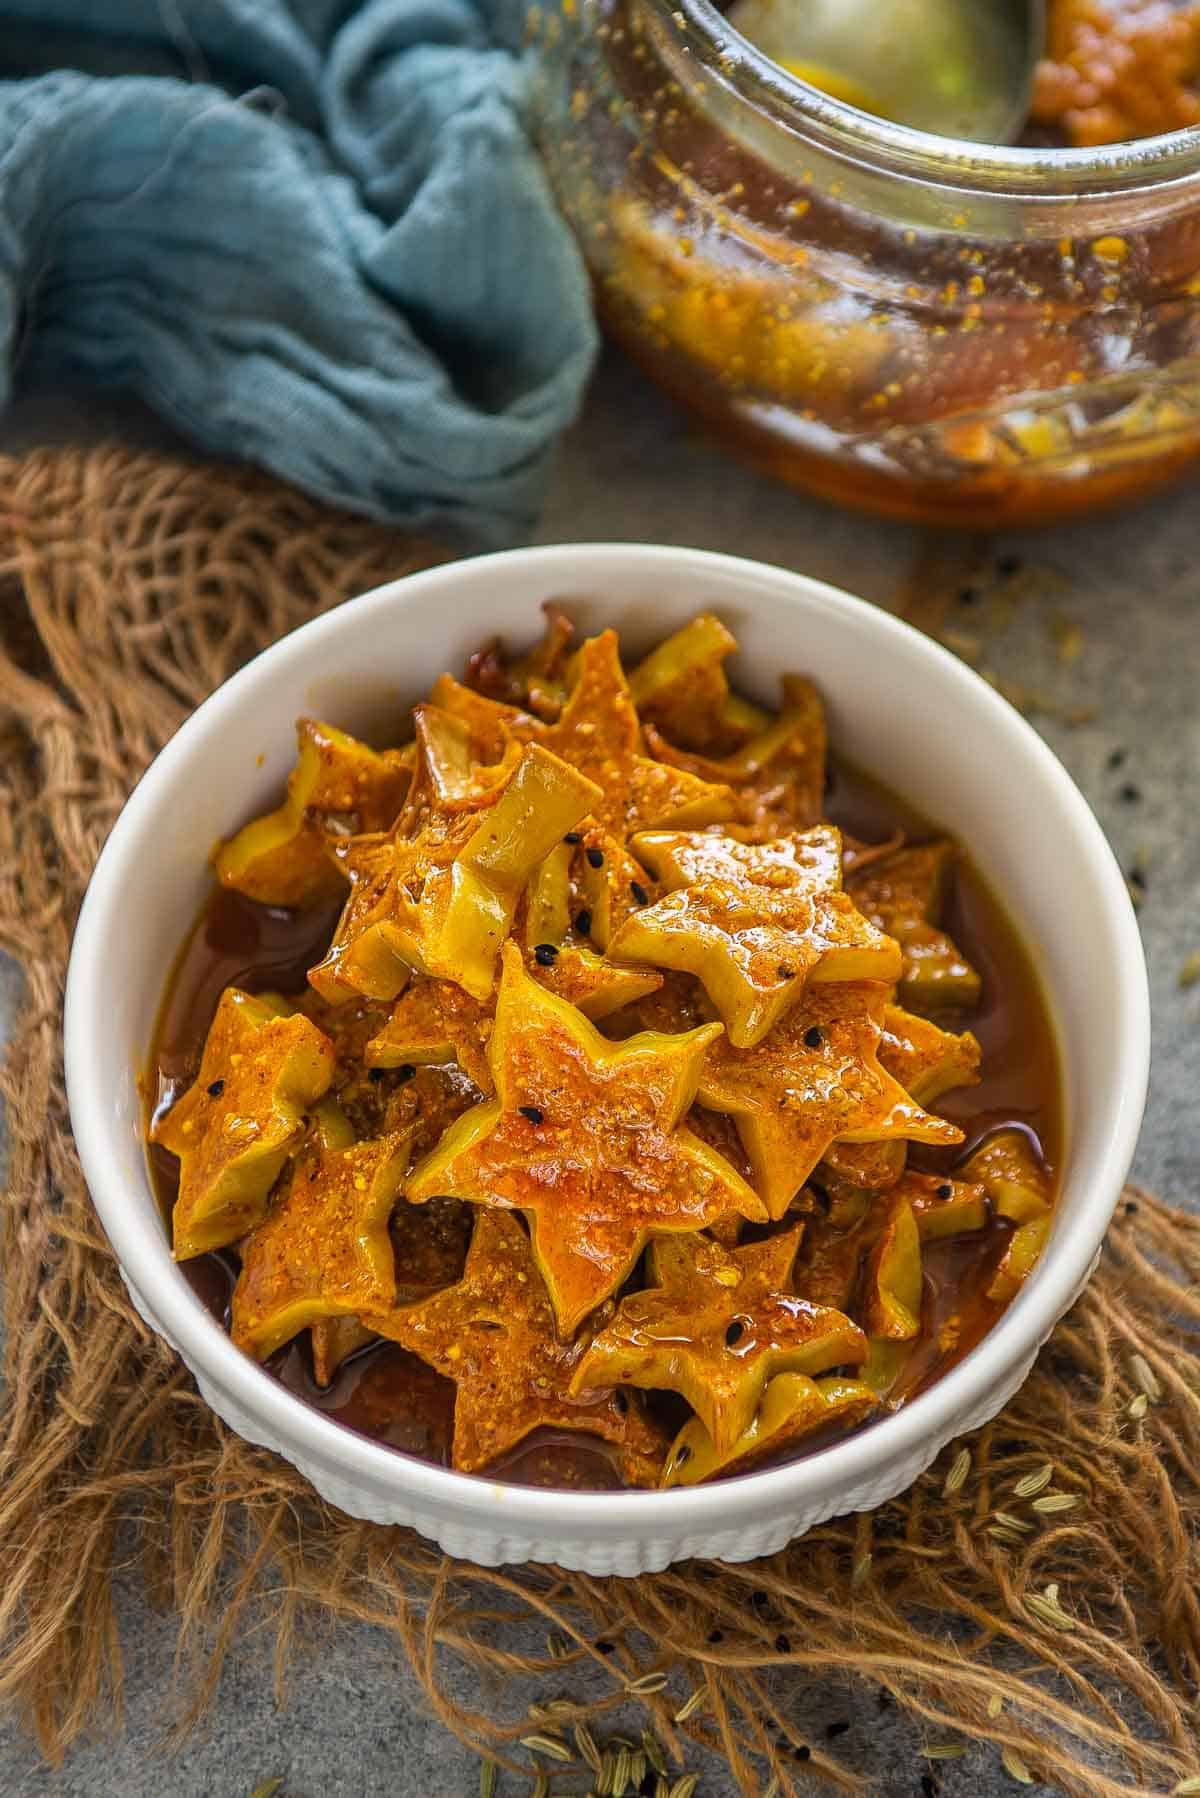 Starfruit pickle served in a bowl.